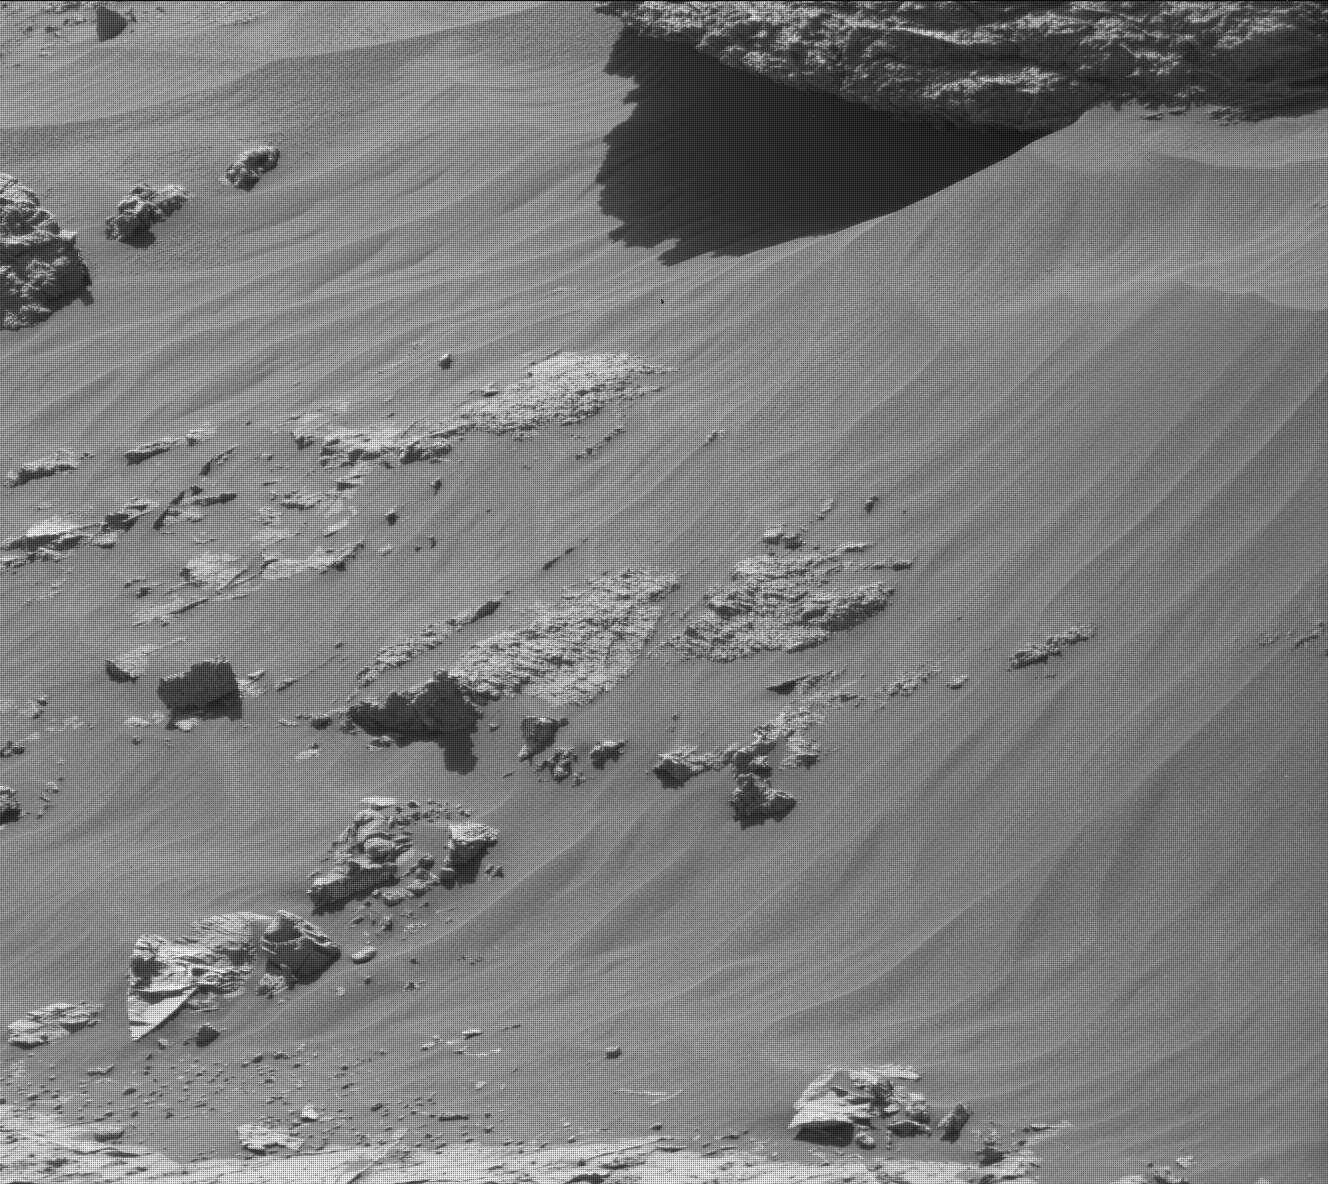 Nasa's Mars rover Curiosity acquired this image using its Mast Camera (Mastcam) on Sol 3153